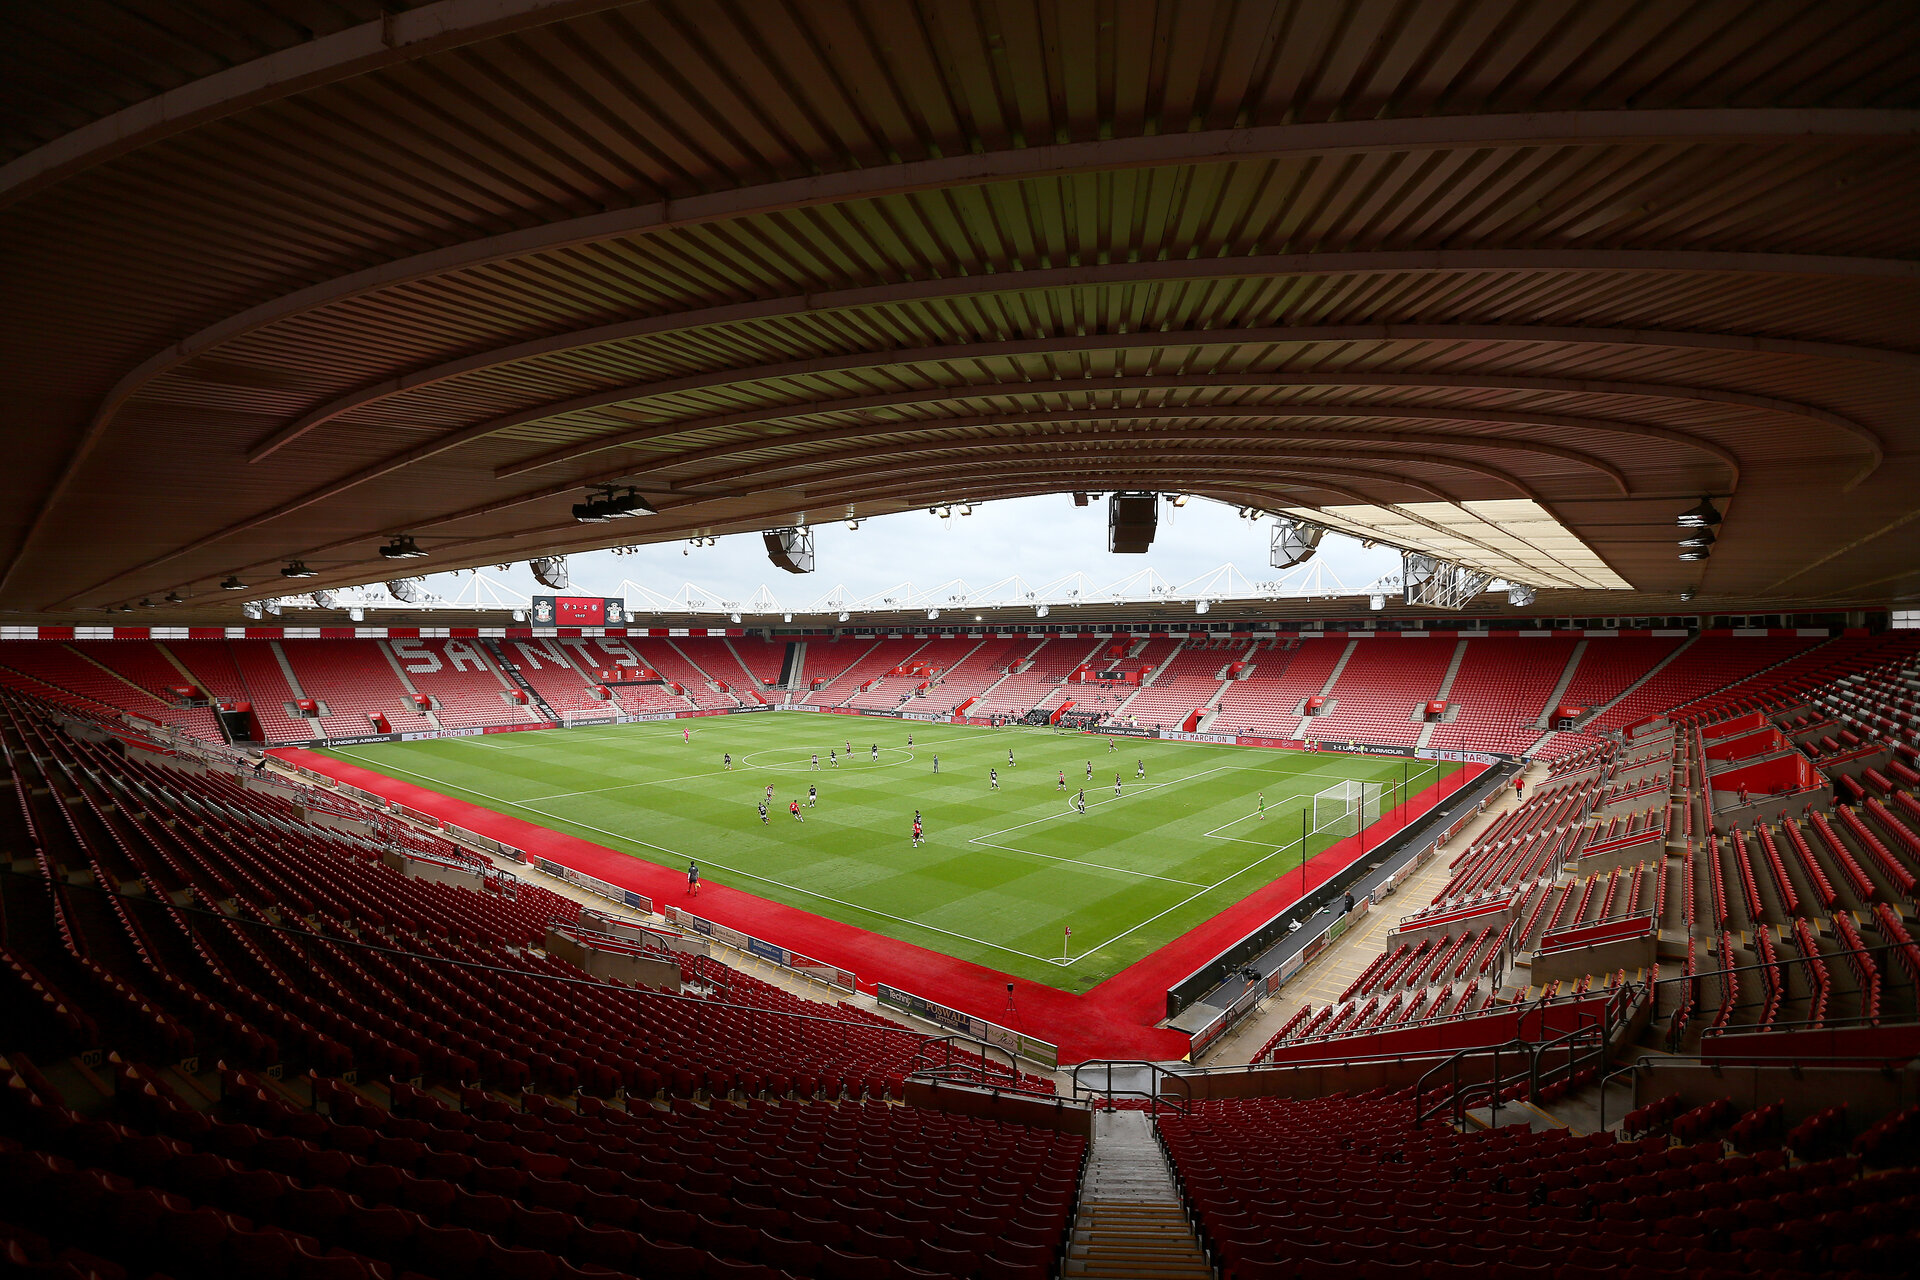 SOUTHAMPTON, ENGLAND - JUNE 12: A general view during a friendly match between Southampton FC and Bristol City, ahead of the Premier League re-start, at St Mary's Stadium on June 12, 2020 in Southampton, England. (Photo by Matt Watson/Southampton FC via Getty Images)